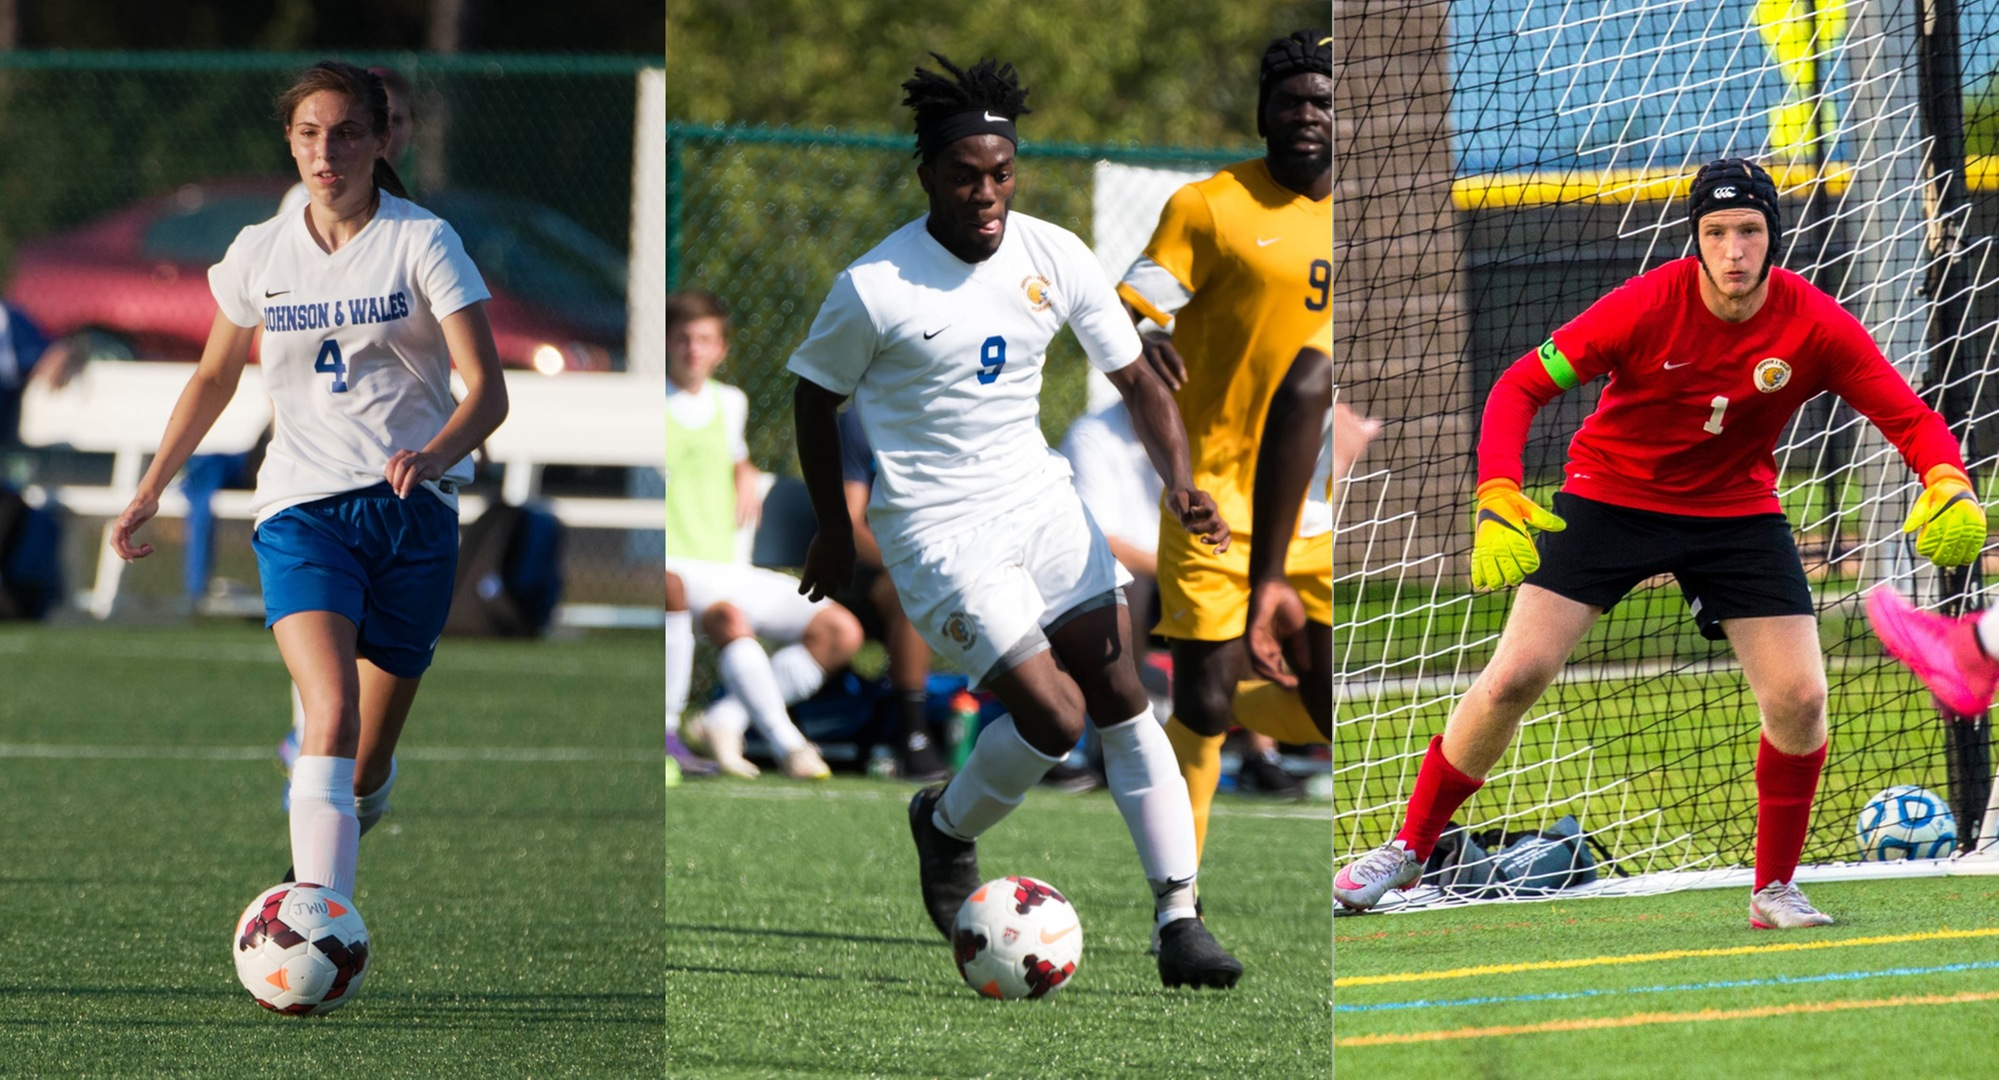 Trio of Wildcats Selected as USCAA National Players of the Week